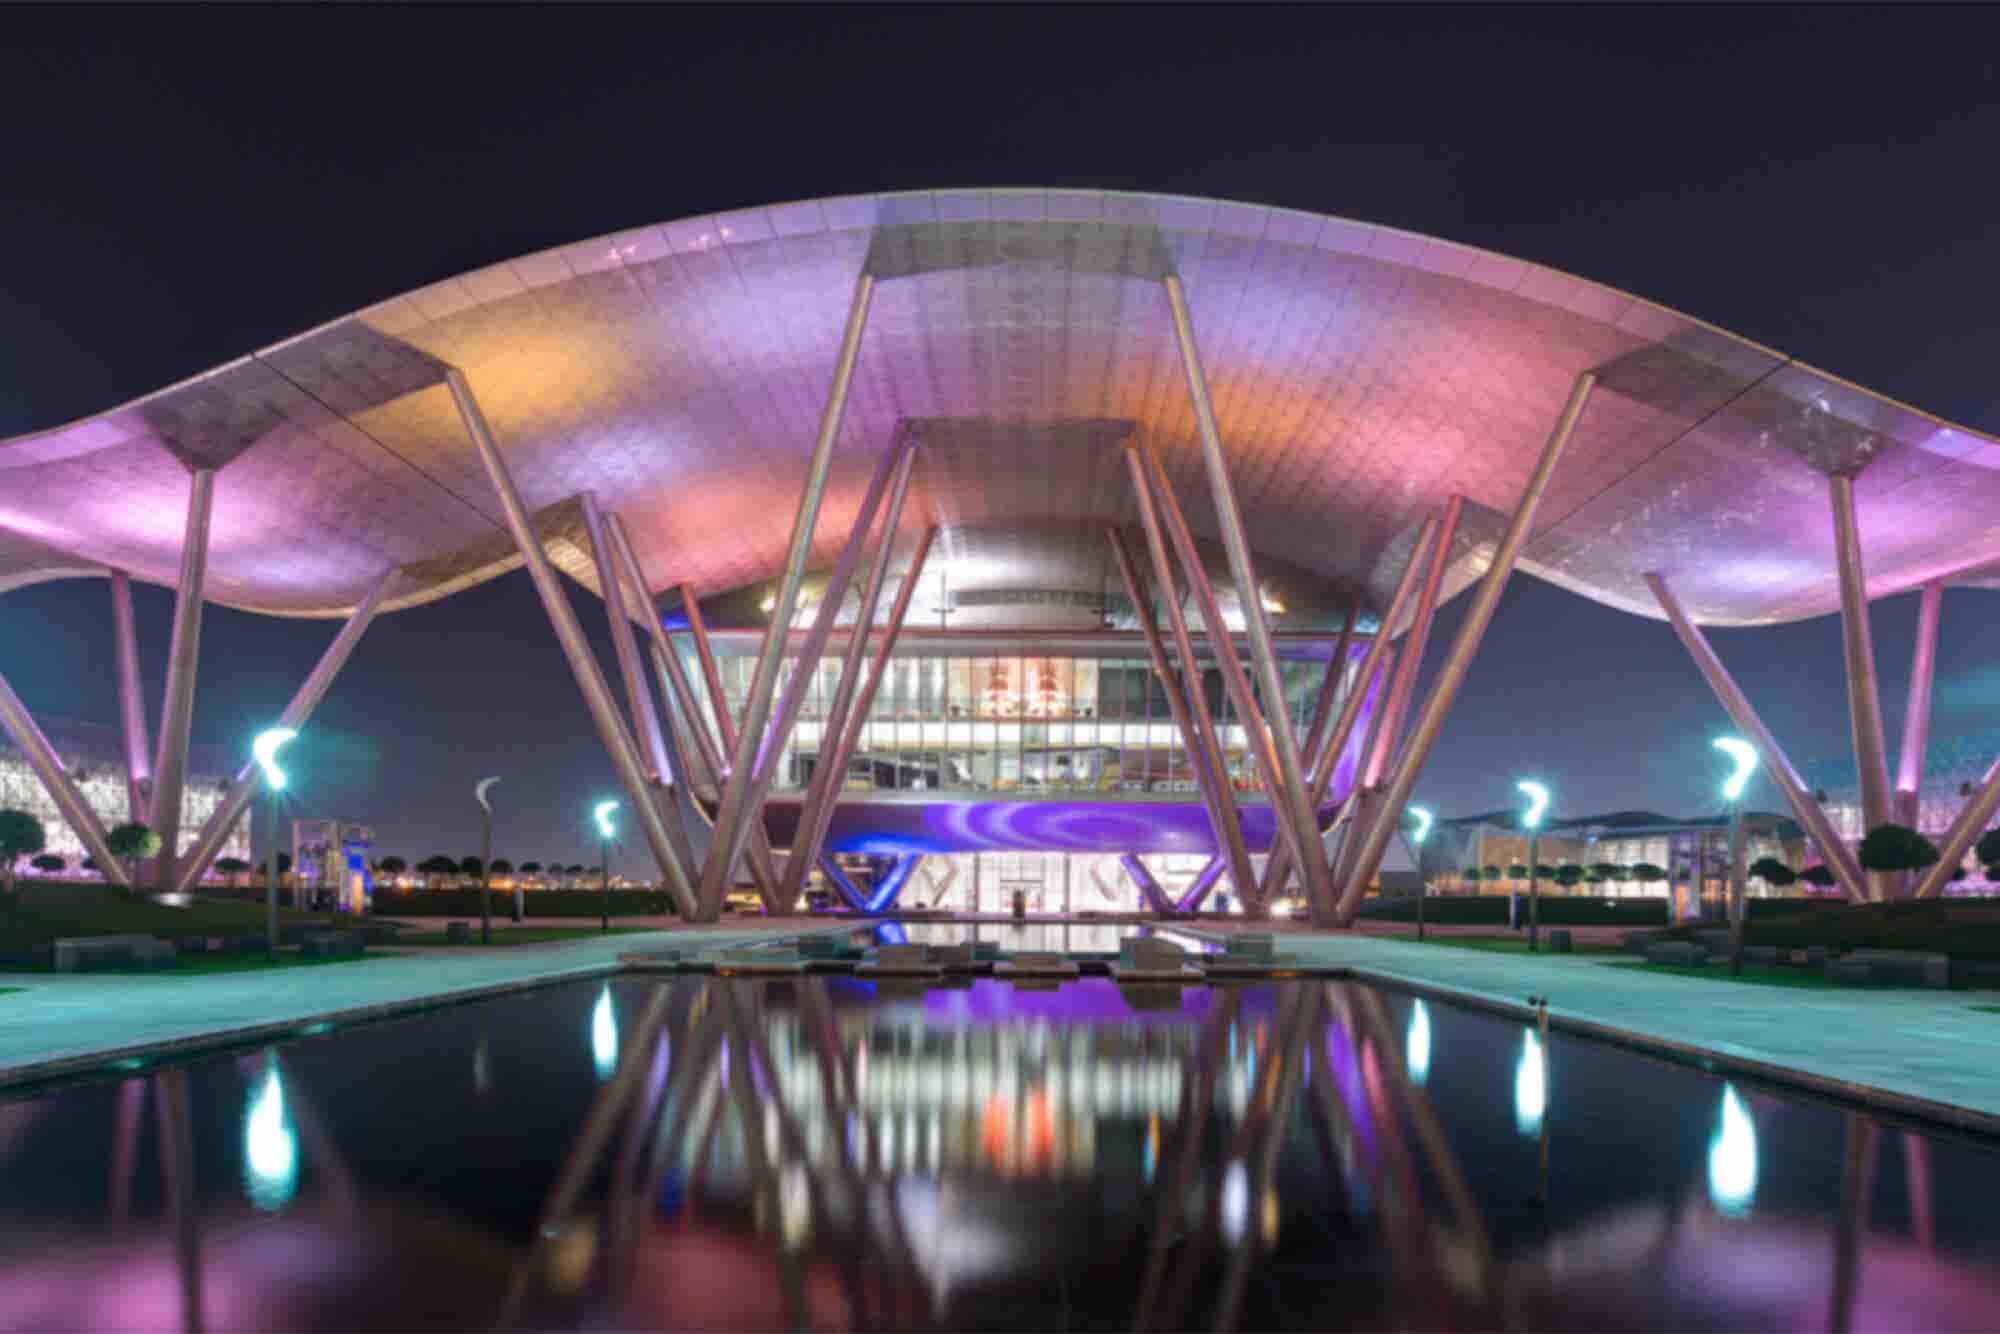 To Advance Qatar's Tech Ecosystem, An Investment In Human Capital Is Needed